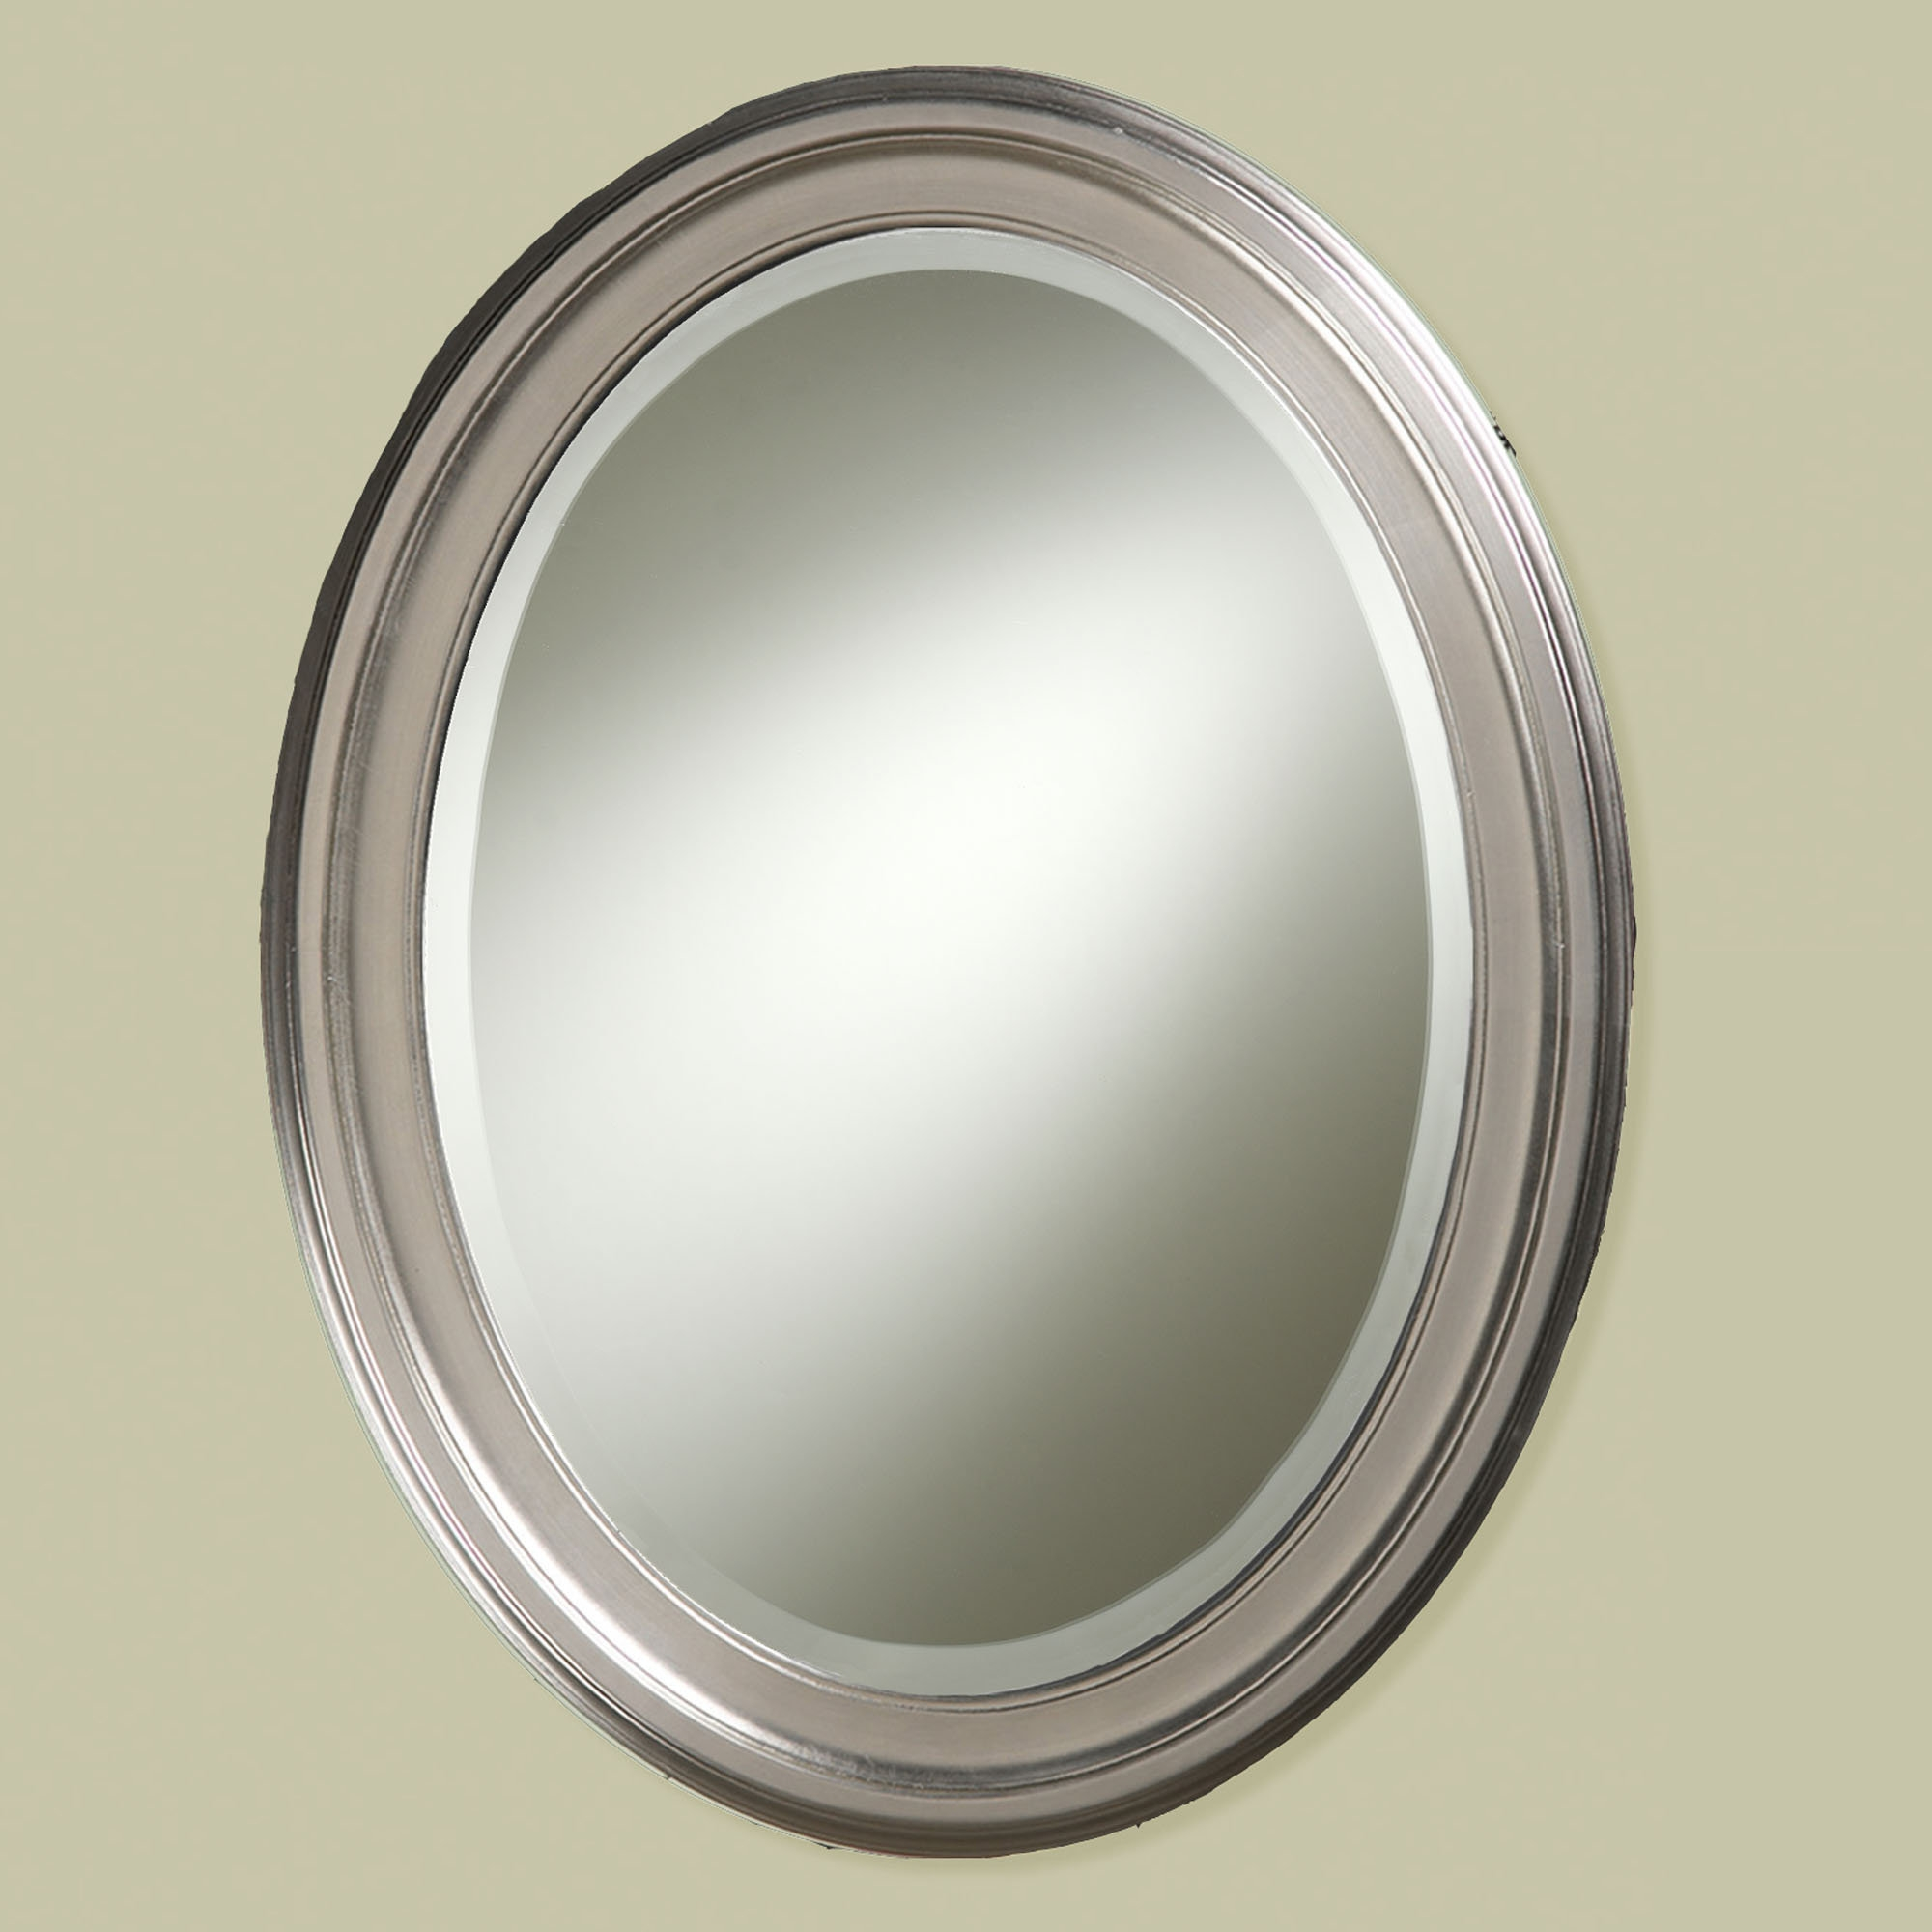 Oval Wall Mirrors Mirrors Uk With Stylish Loree Brushed Nickel Inside Oval Mirrors For Walls (Image 12 of 15)